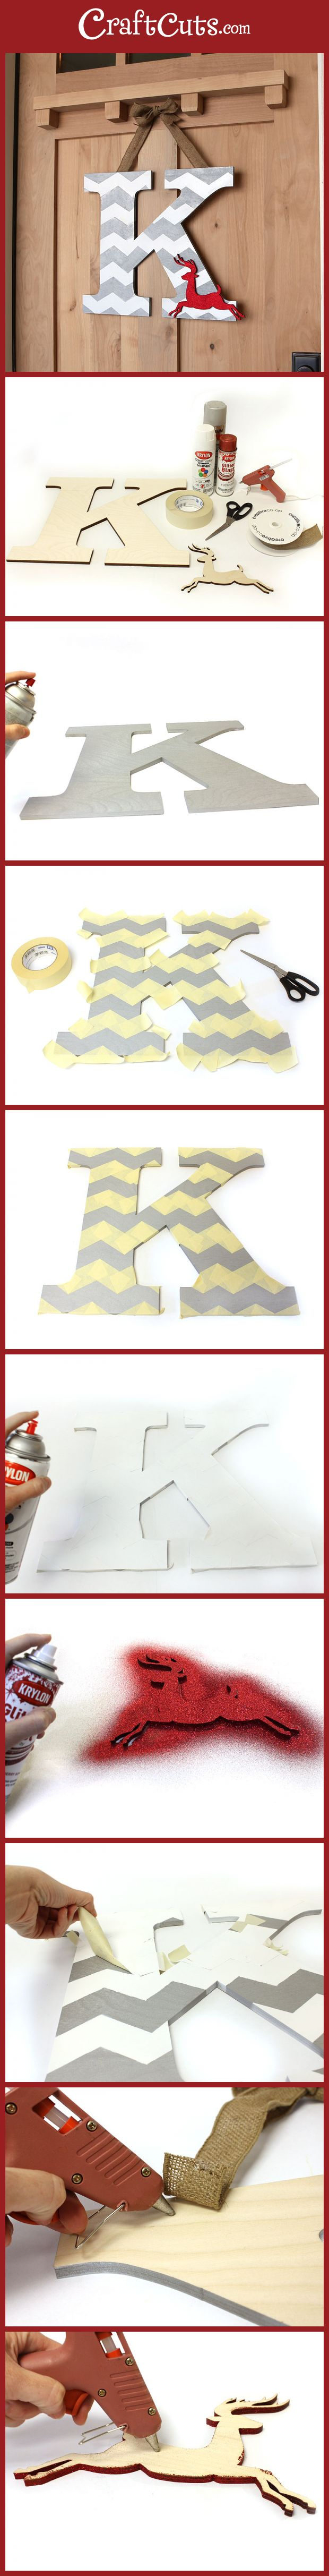 Chevron Deer Monogram Wreath | CraftCuts.com